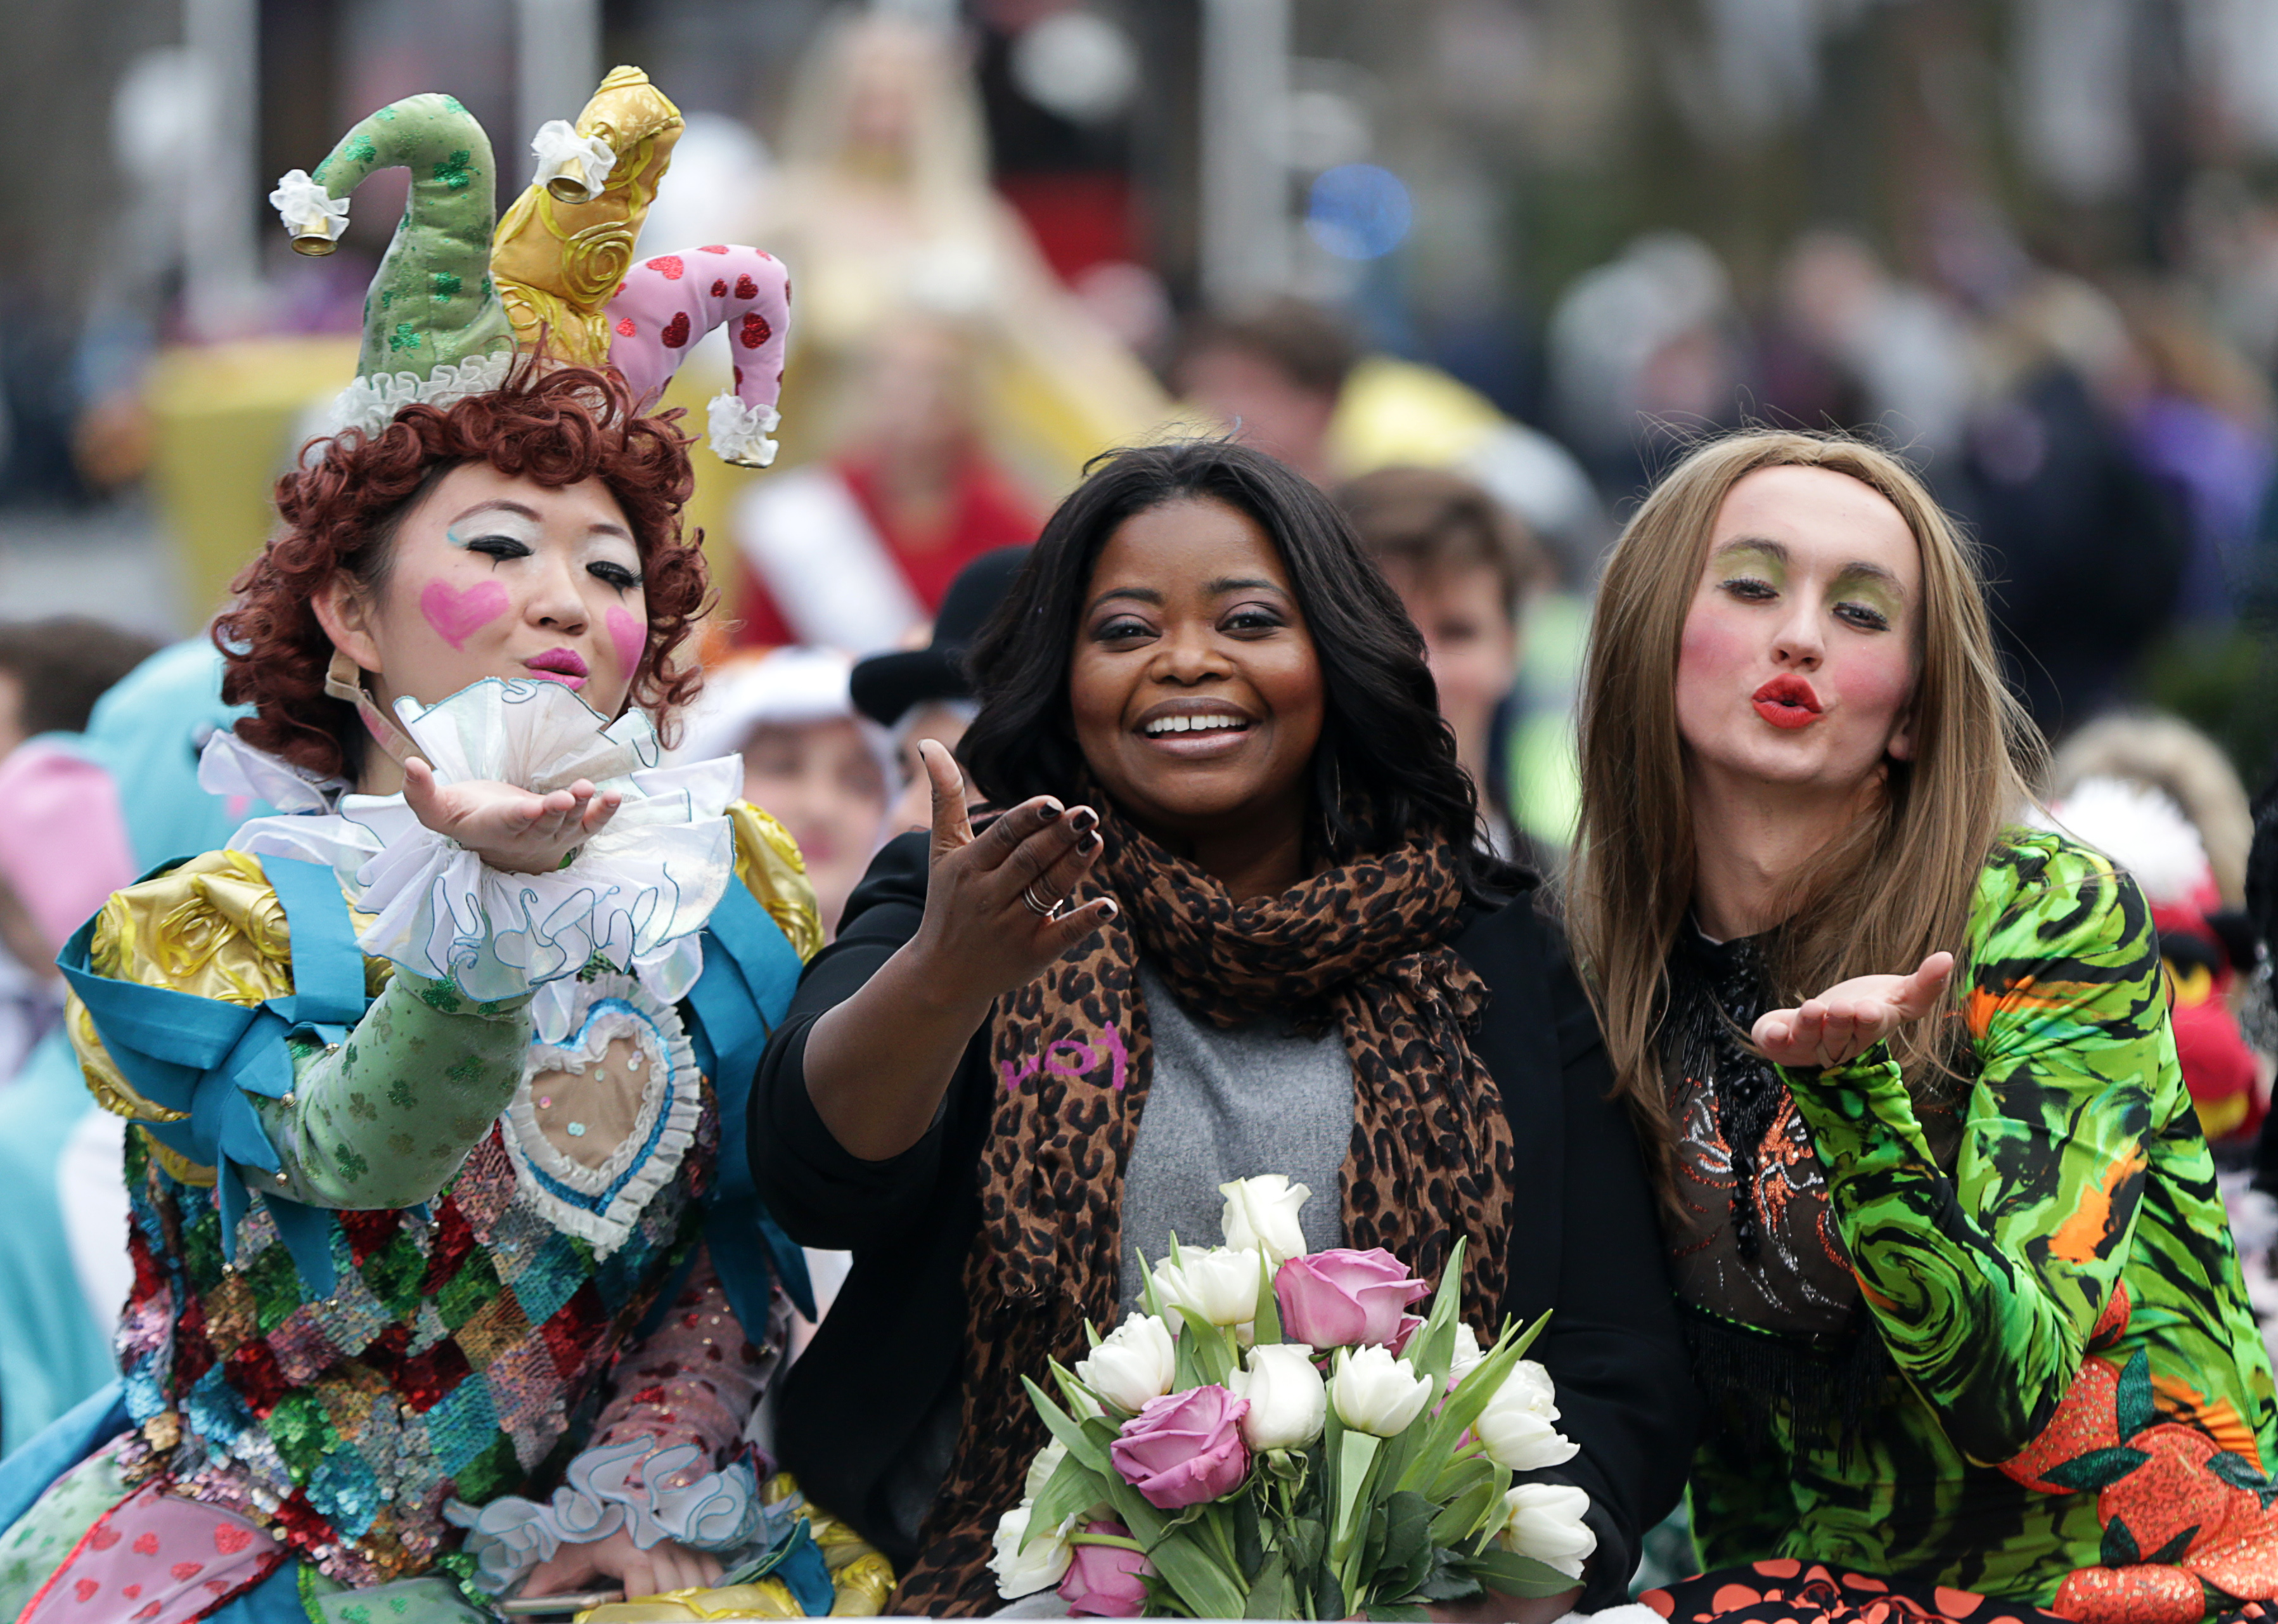 CAMBRIDGE, MA - JANUARY 26: Octavia Spencer, center, 2017 Hasty Pudding Woman of the Year, rides in a car with Guan-Yue Chen, left, and Dan Milashewski, right, during the annual parade down Massachusetts Avenue in Cambridge, Mass., on Jan. 26, 2017. (Photo by Jonathan Wiggs/The Boston Globe via Getty Images)